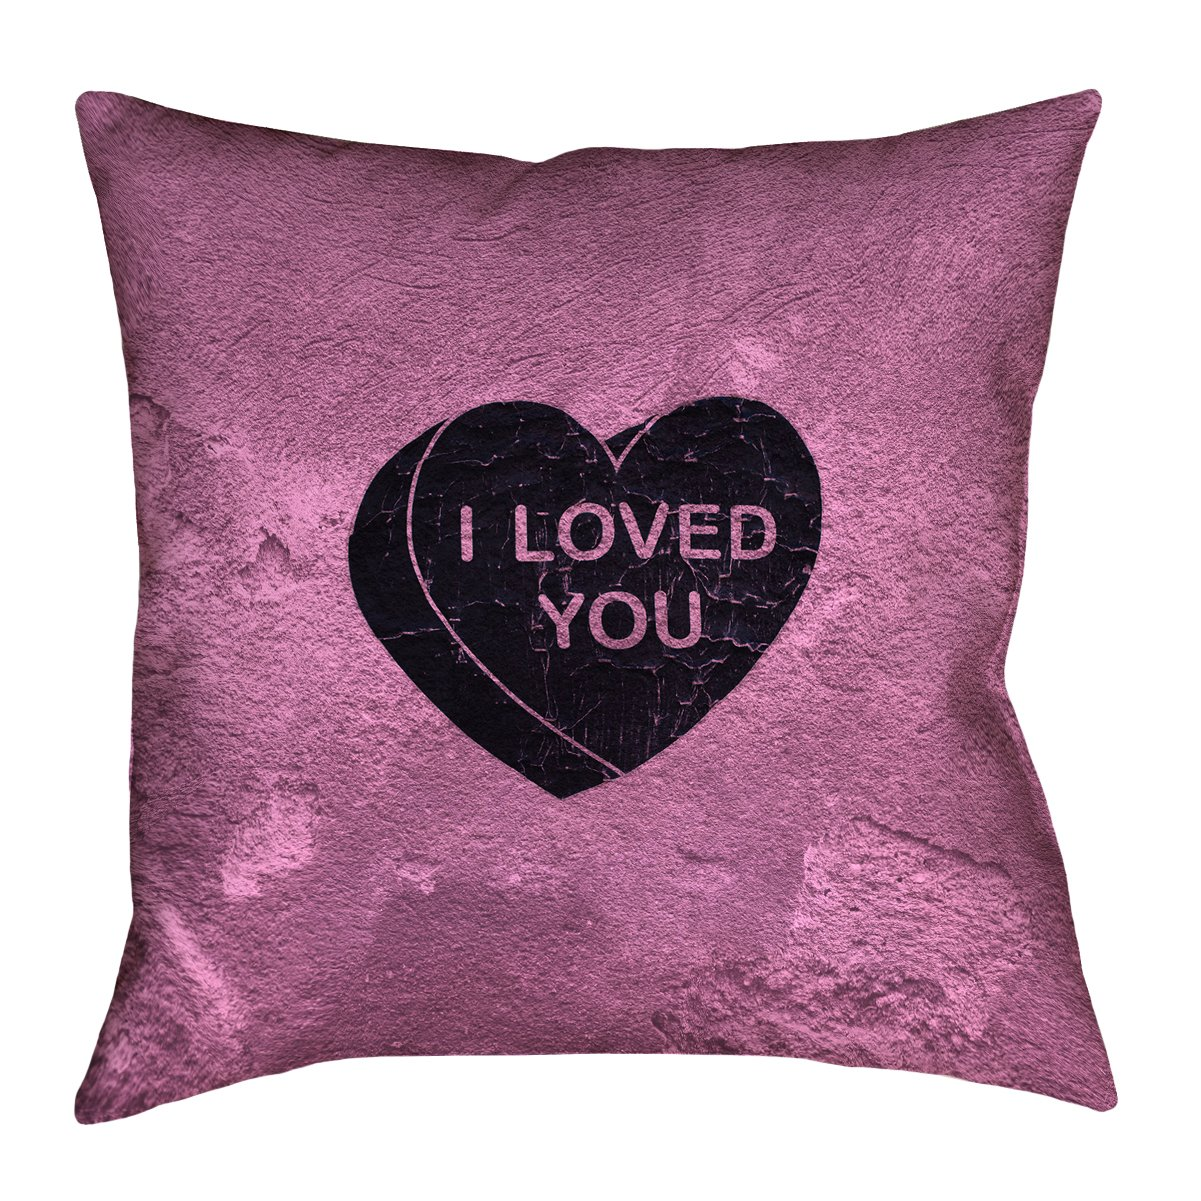 ArtVerse Katelyn Smith 16 x 16 Spun Polyester Double Sided Print with Concealed Zipper /& Insert New Mexico Love Pillow